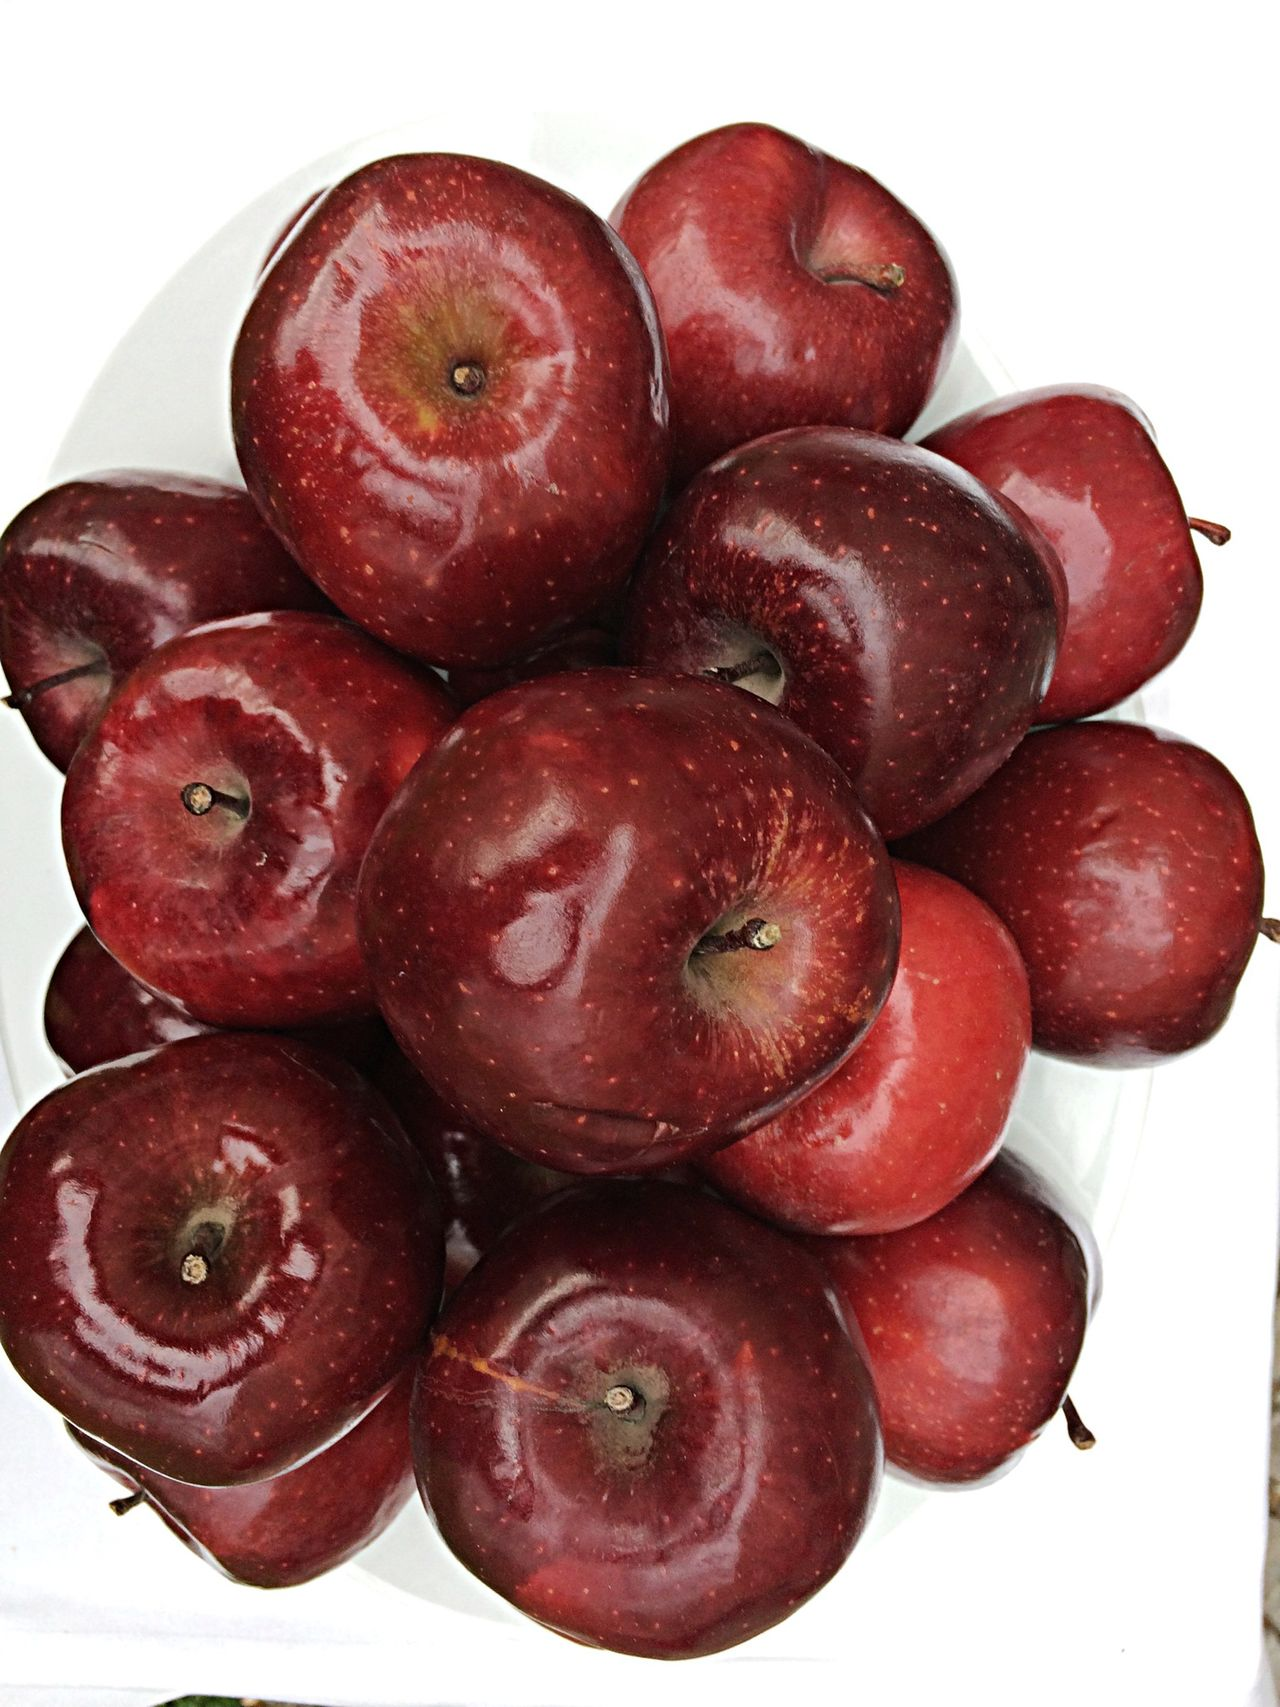 Apple Food Red Healthy Living wellness vitamins nutrition diet health many things